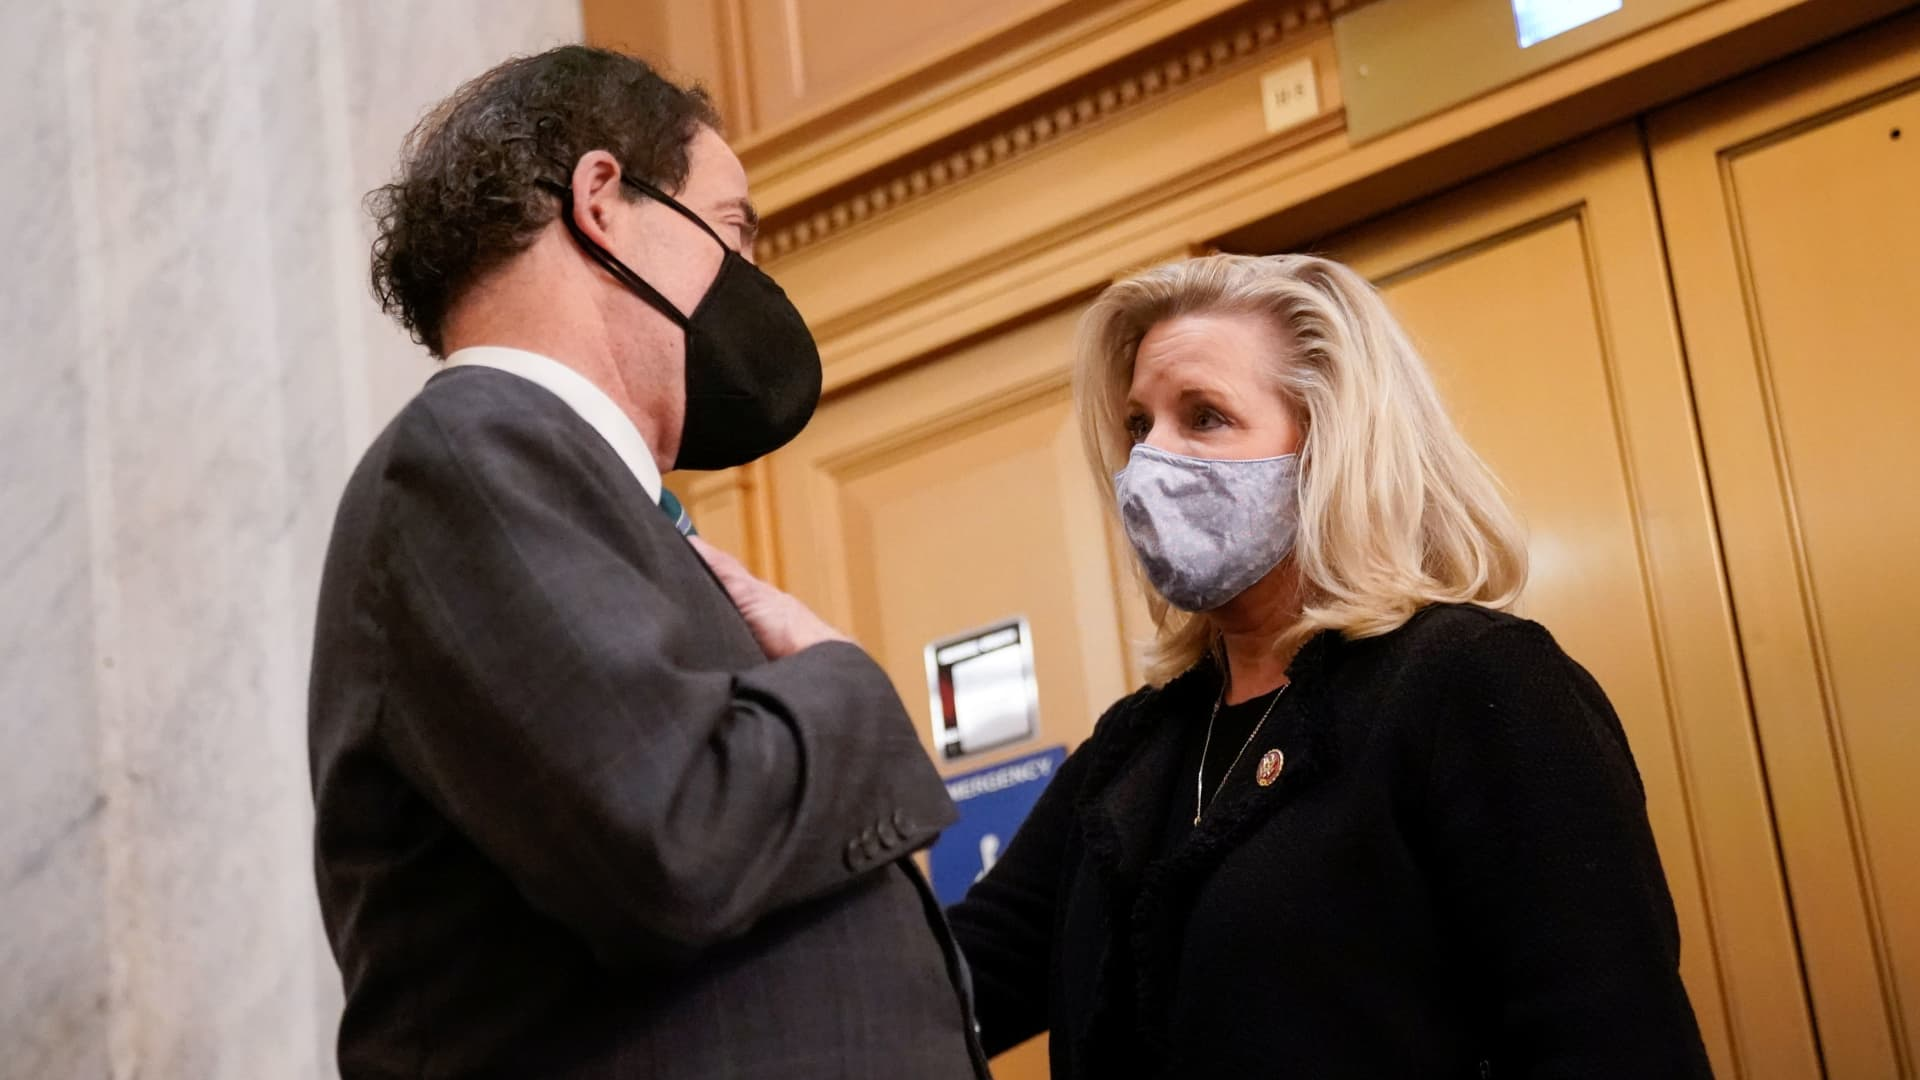 Rep. Jamie Raskin (D-MD) talks with Rep. Liz Cheney (R-WY) in the U.S. Capitol after the House voted on a resolution demanding U.S. Vice President Pence and the cabinet remove President Trump from office, in Washington, U.S., January 12, 2021.